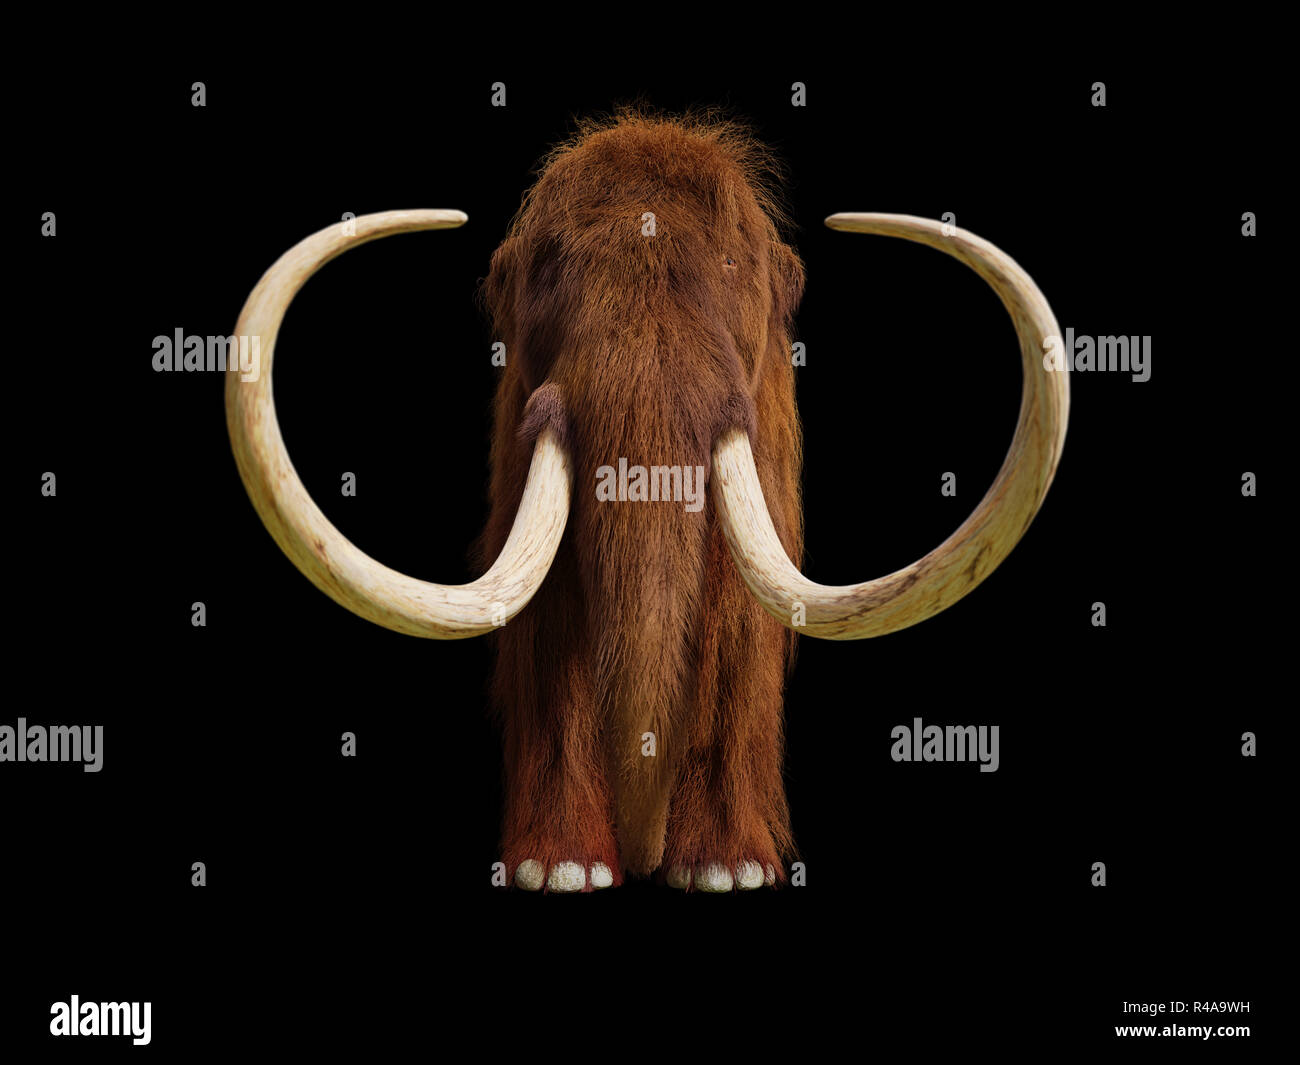 woolly mammoth, prehistoric mammal front view isolated with shadow on black background - Stock Image